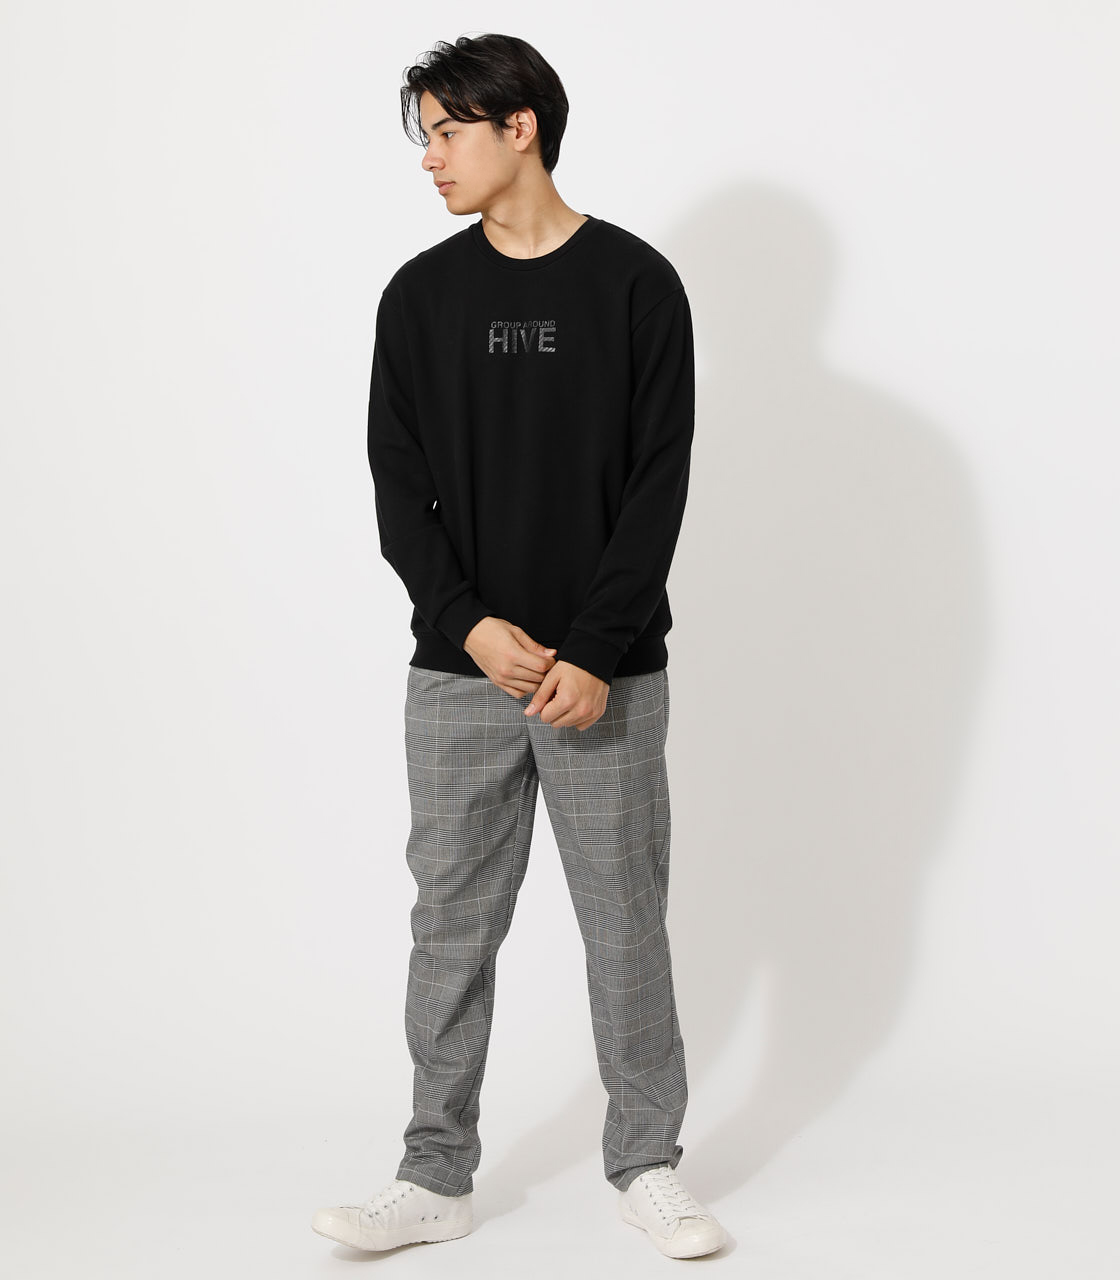 SYNC/HIVE PULLOVER/シンク/ハイブプルオーバー 詳細画像 BLK 3